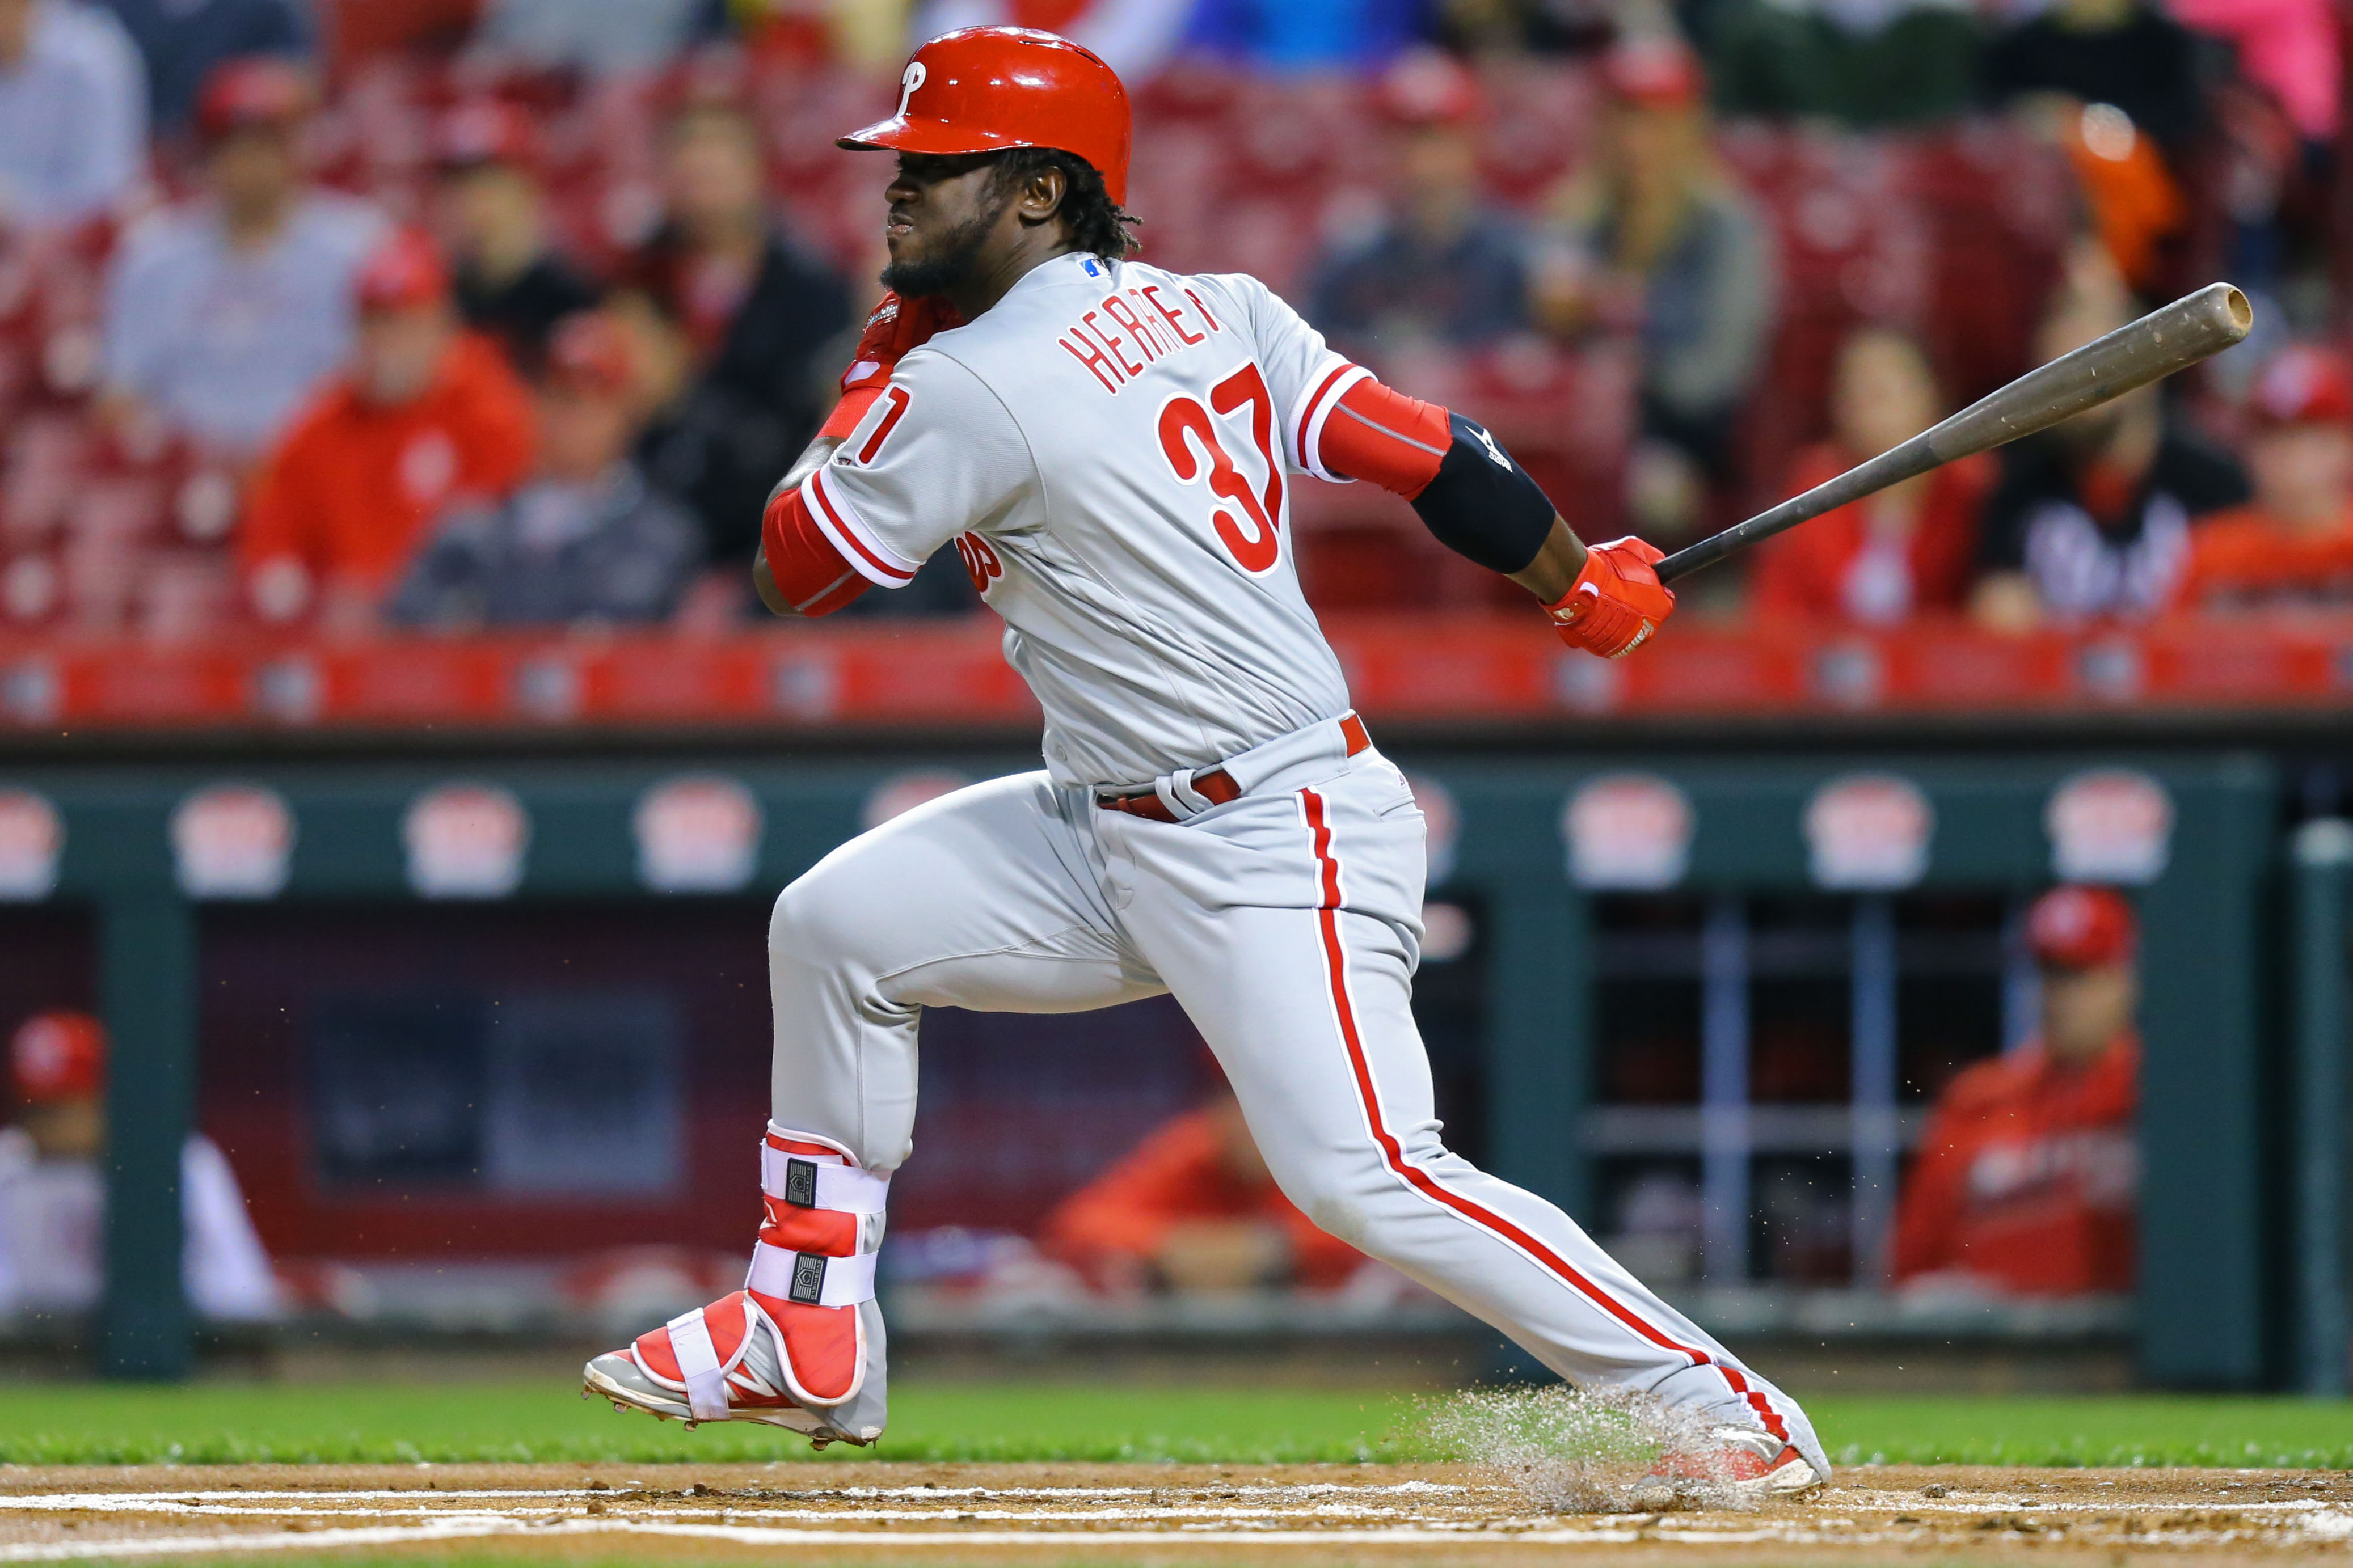 Joseph leads Phillies over Rockies 2-1 in 11 innings